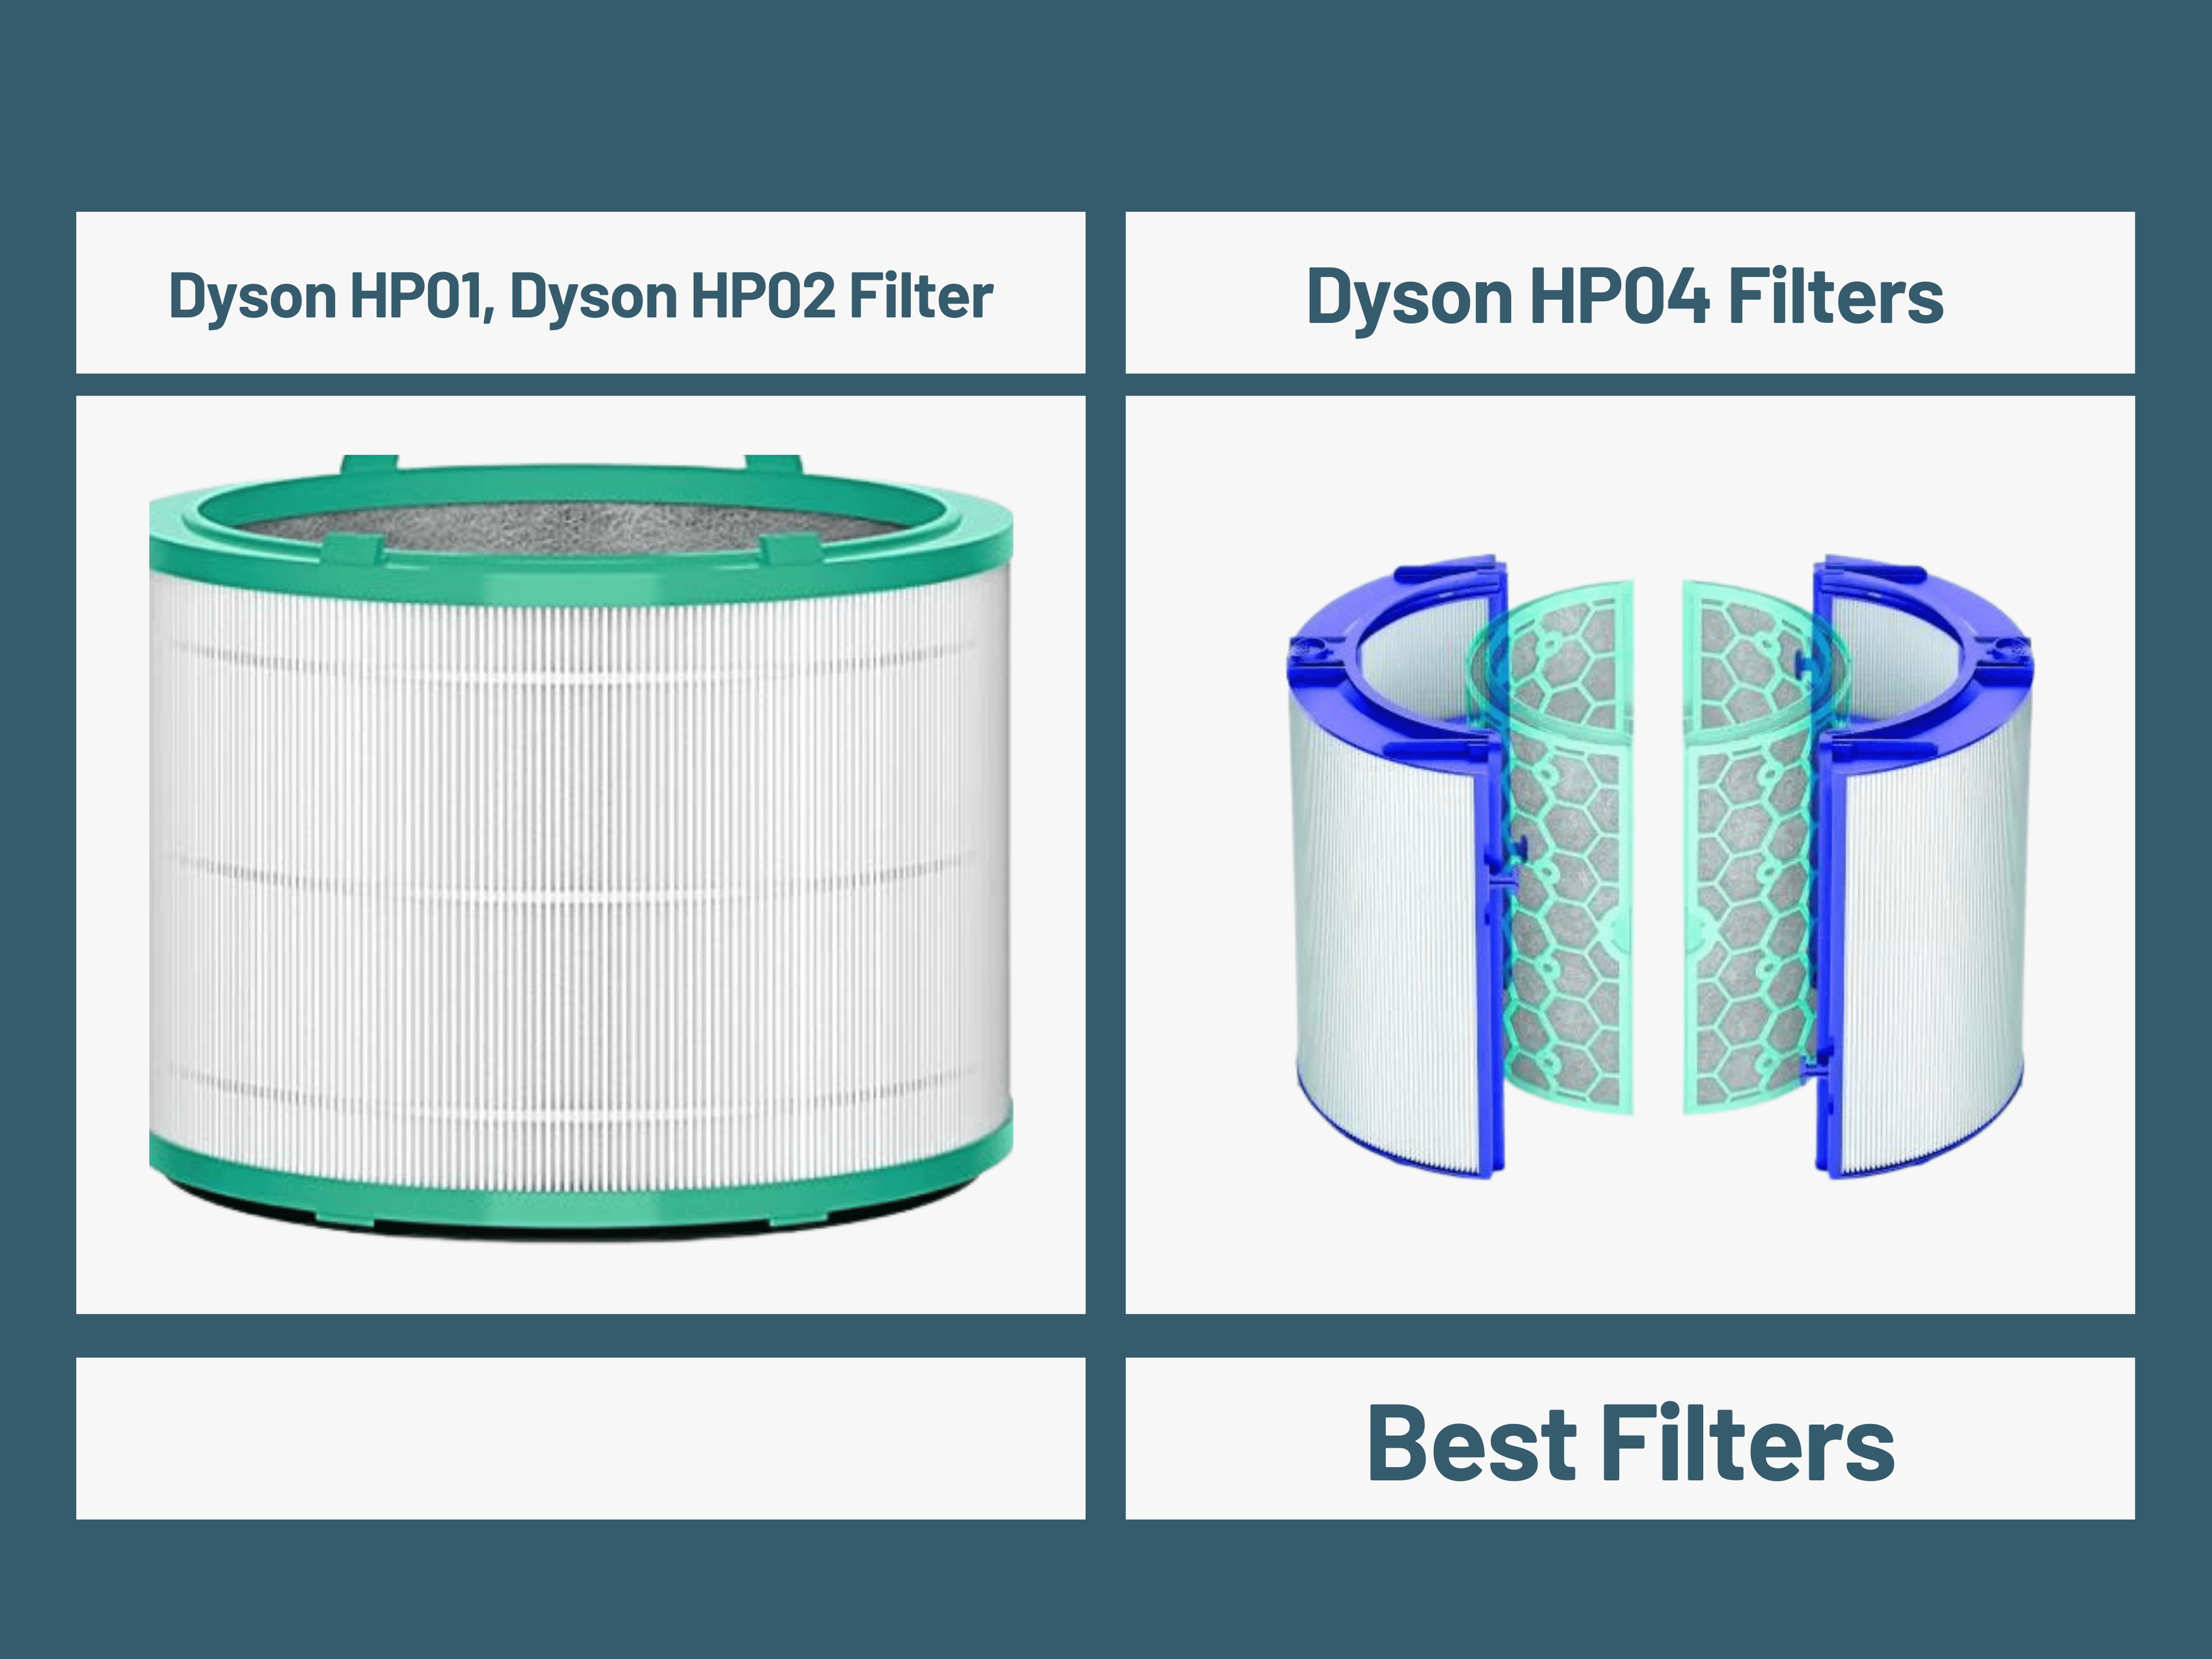 Filter Comparison of Dyson HP1, HP02, HP04